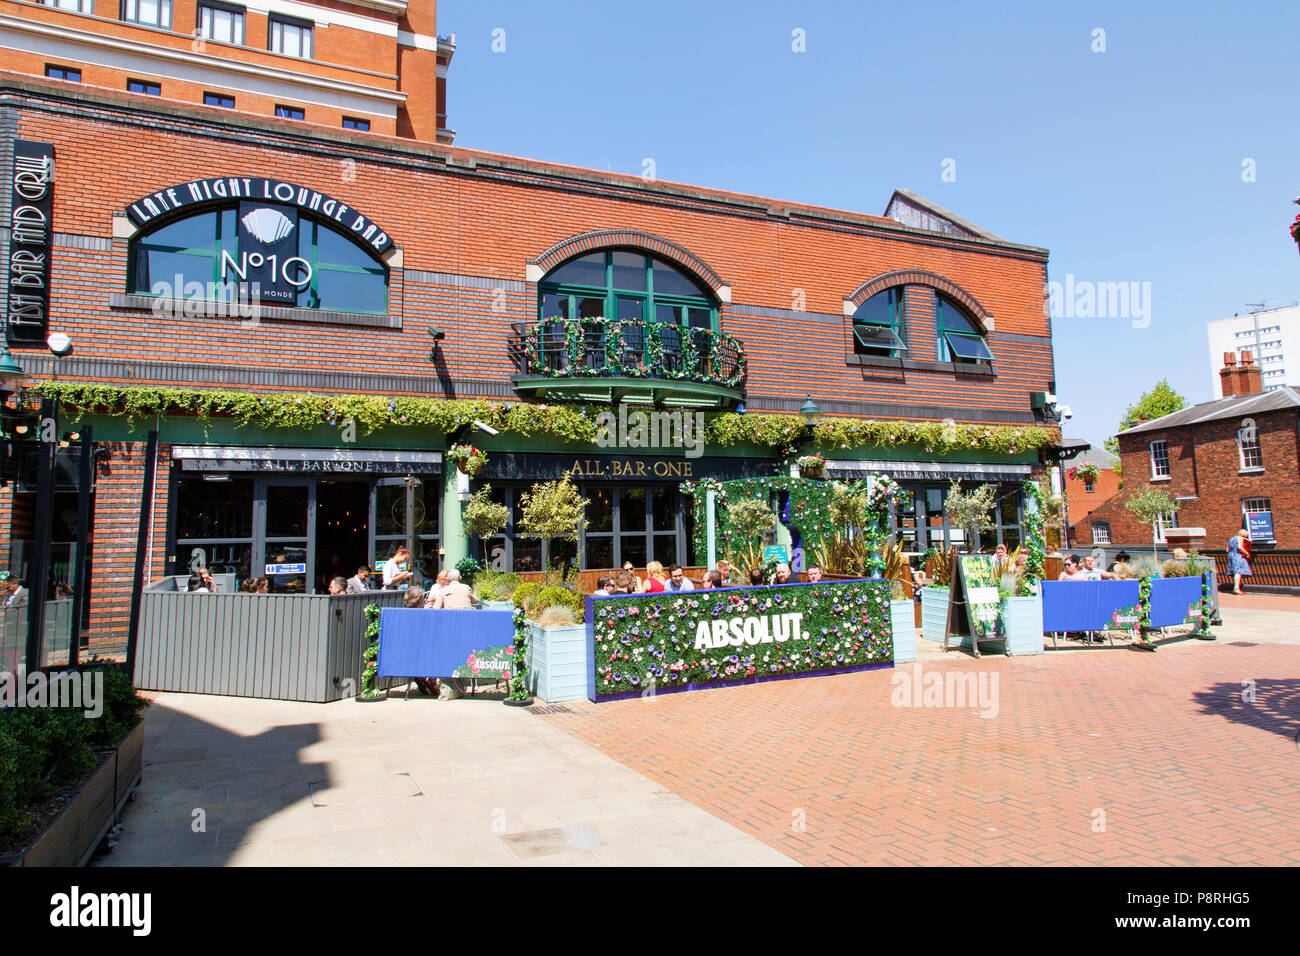 Birmingham, UK: June 29, 2018: Tourists relax and enjoy the refreshments at a restaurant located on the restored Birmingham Canal System. - Stock Image